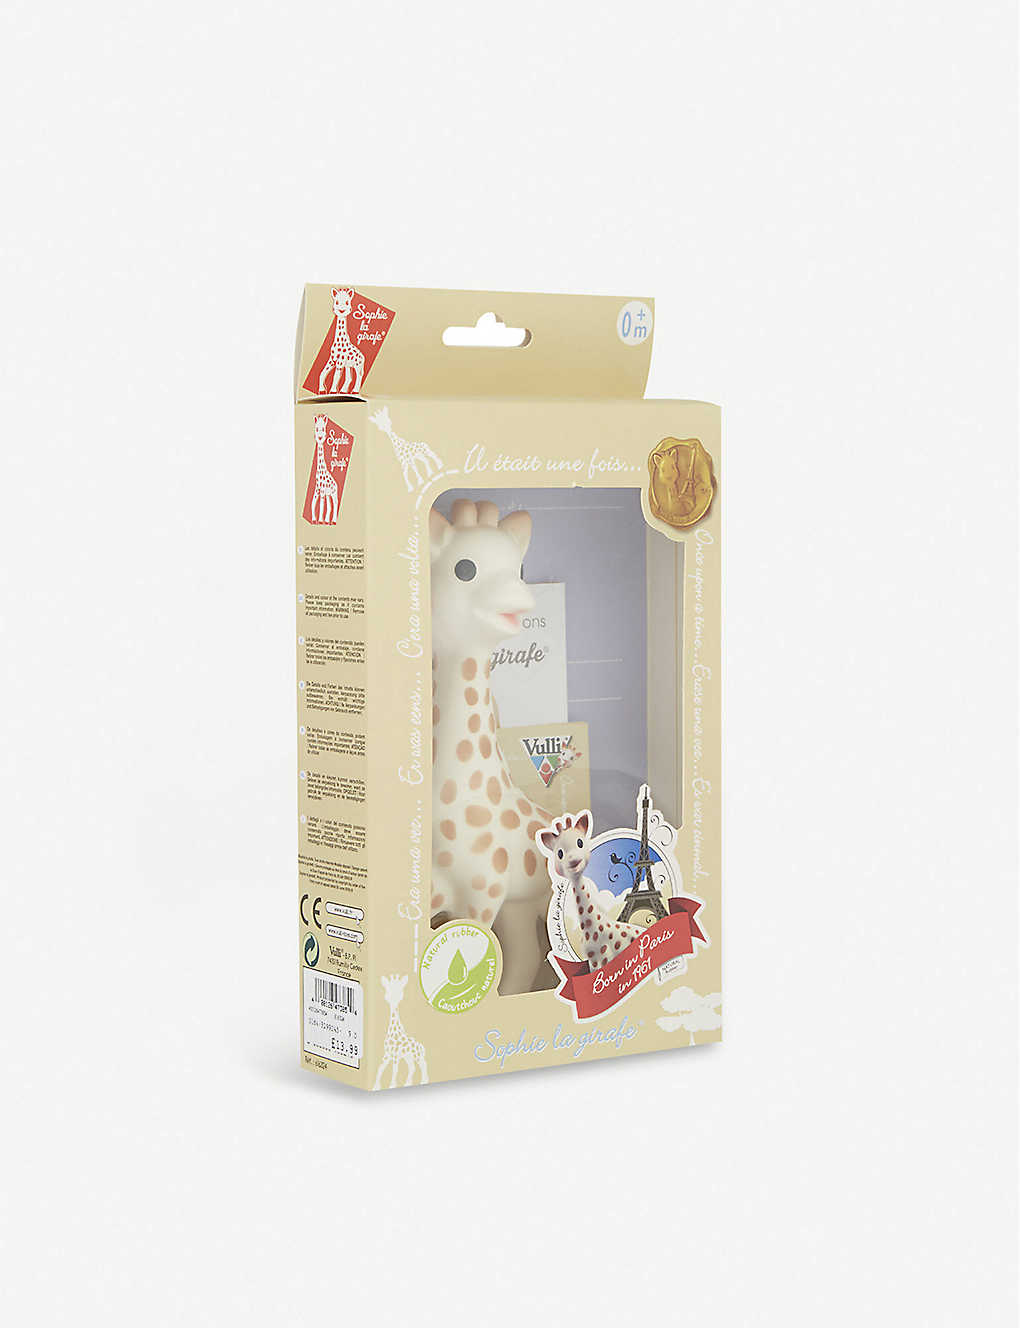 SOPHIE THE GIRAFFE: Laughing toy